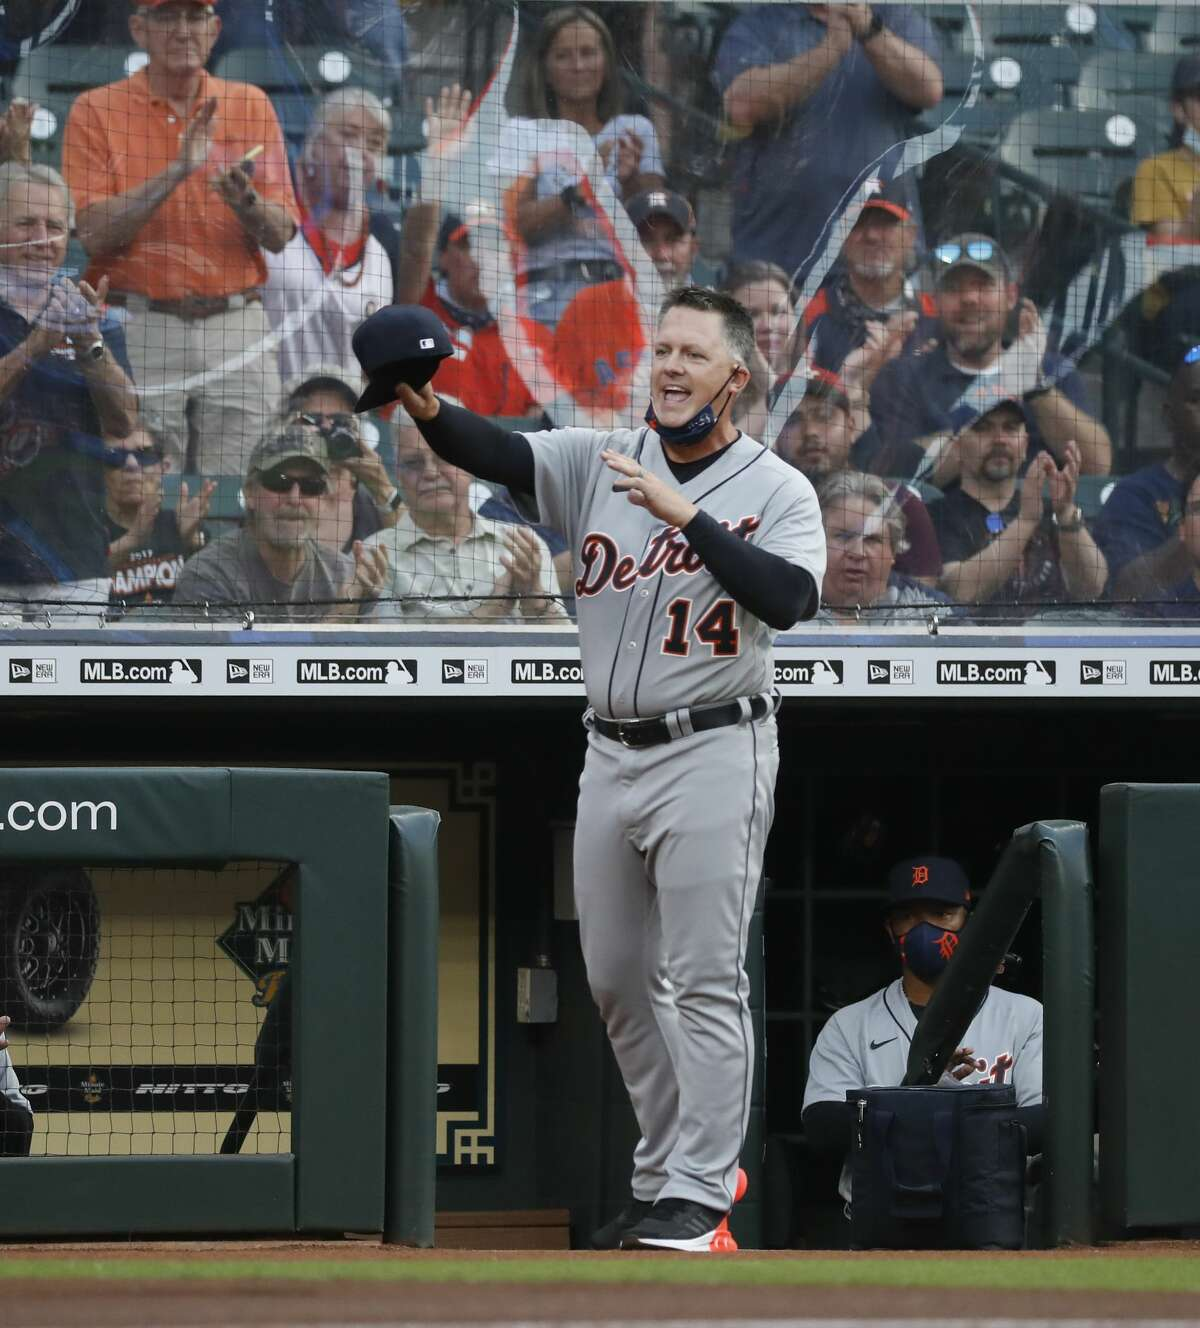 Detroit Tigers manager A.J. Hinch (14) tips his cap to the cheering Houston Astros fans before the start of the first inning of an MLB baseball game at Minute Maid Park, in Houston, Monday, April 12, 2021.